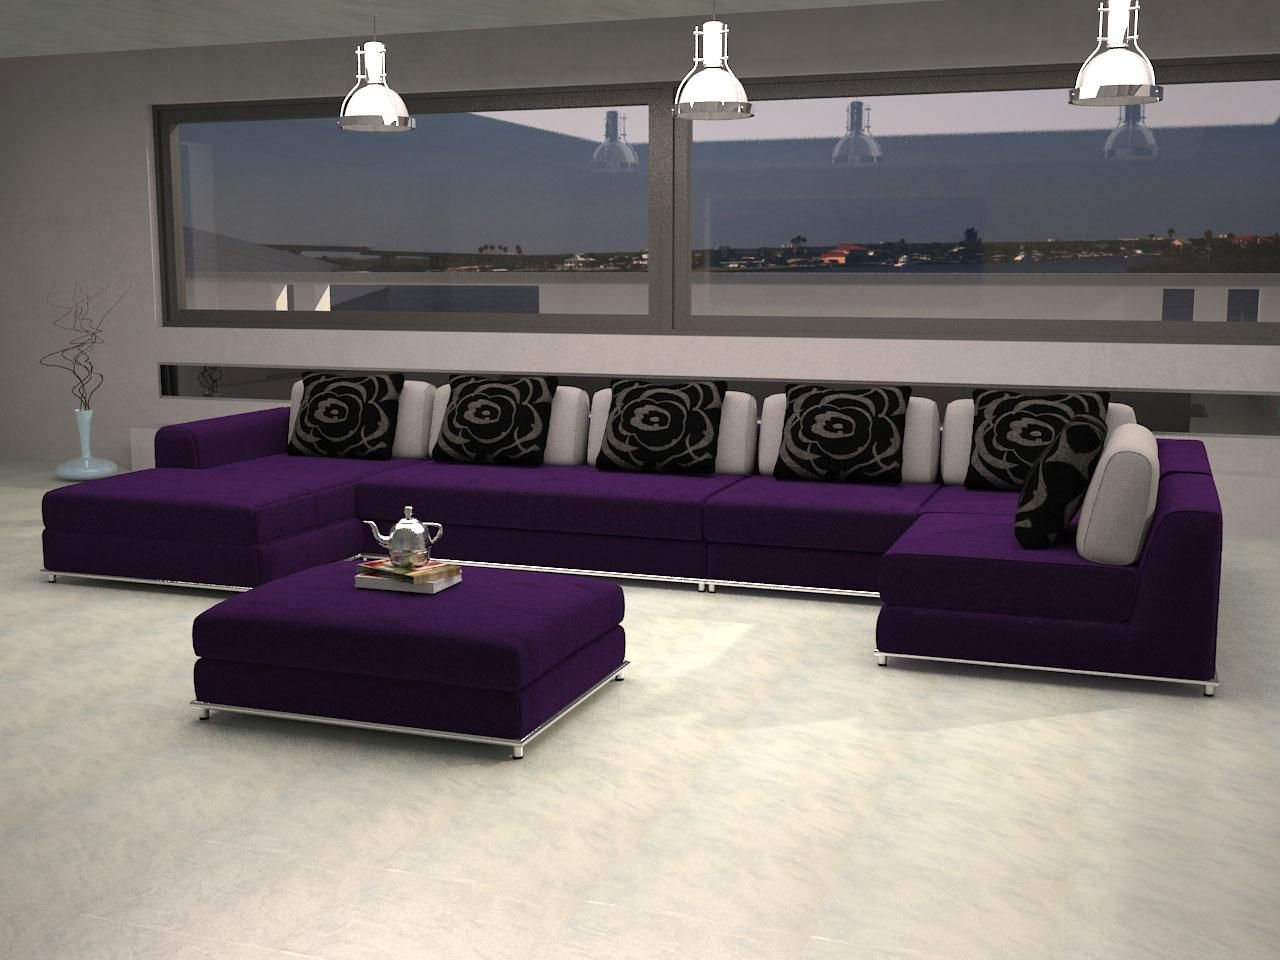 Indoor : Modern Living Room Sofa Set Eggplant Color Scheme Eggplant Color  Scheme For Interior Home Decorations Decorating Color Palettesu201a Eggplant  Bathroom ...